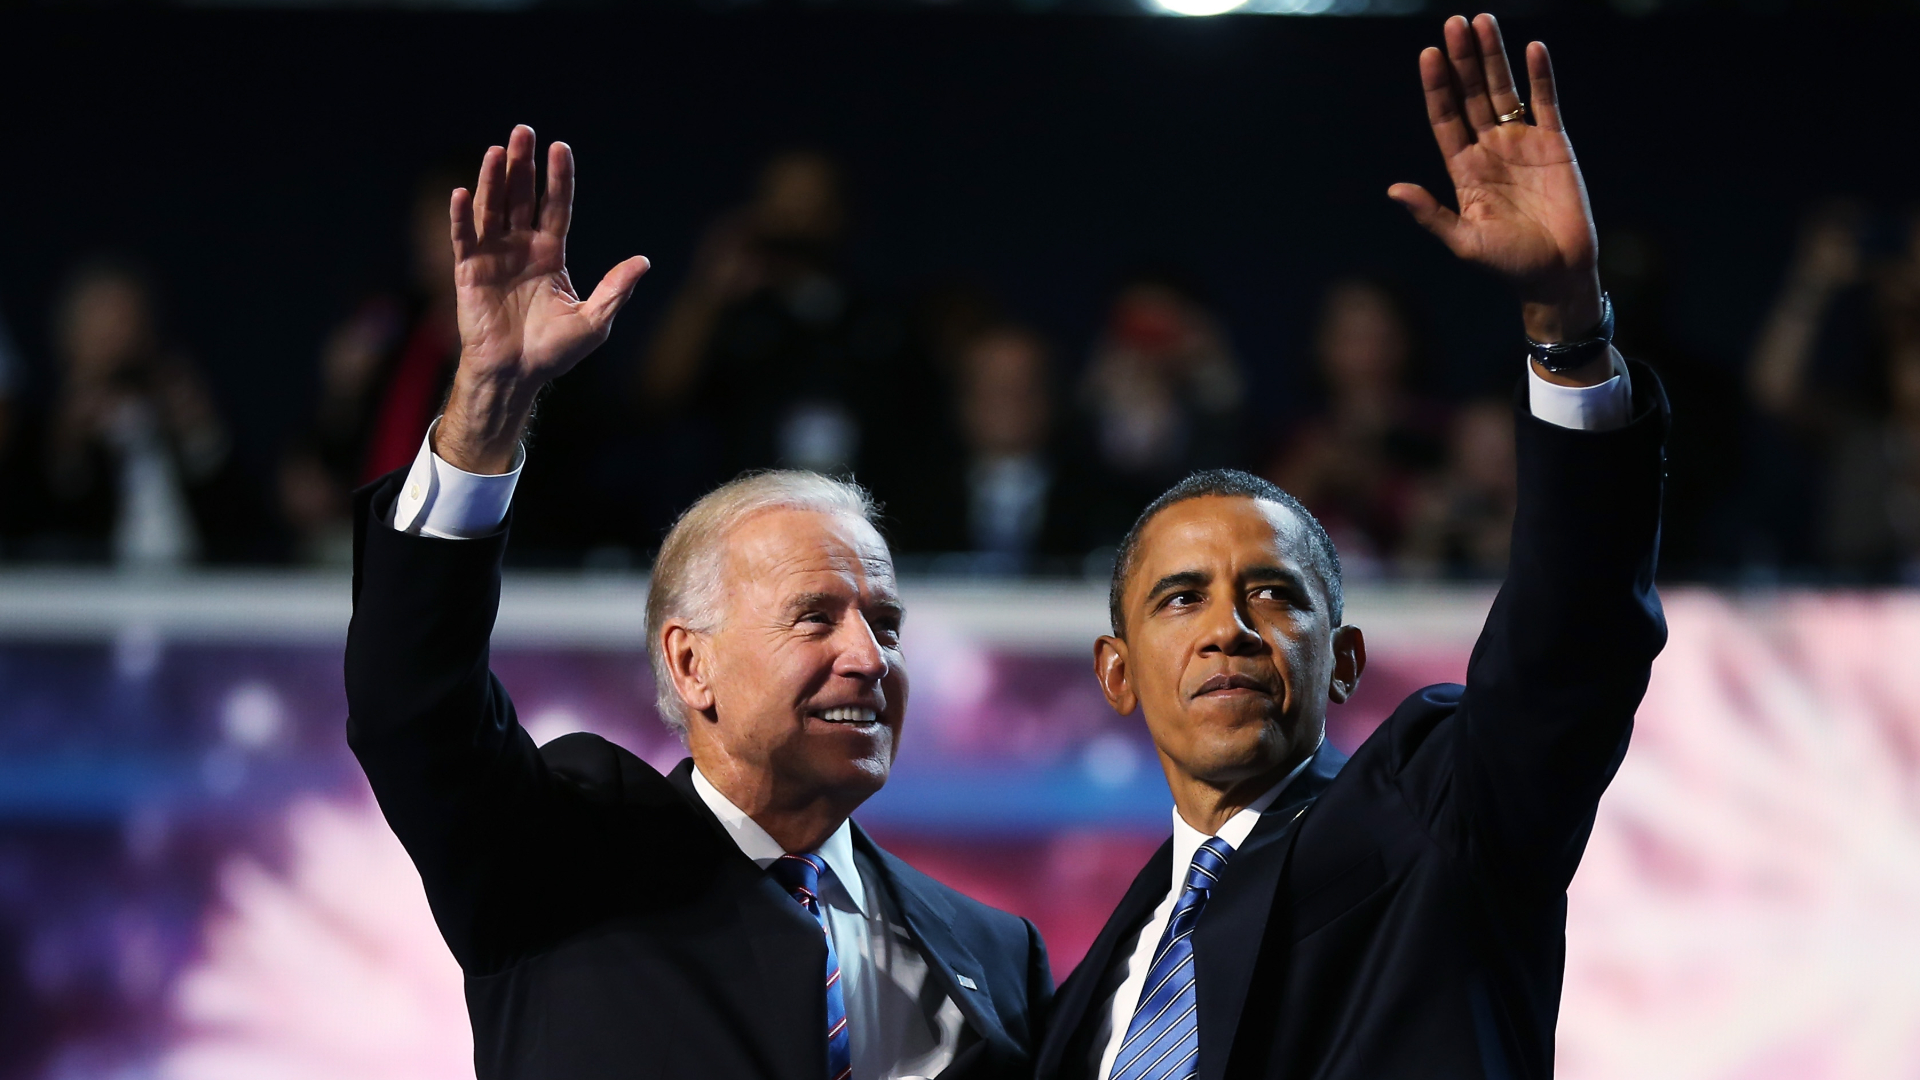 President Barack Obama, right, and Vice President Joe Biden wave after accepting the nomination during the final day of the Democratic National Convention on Sept. 6, 2012, in Charlotte, North Carolina. (Tom Pennington / Getty Images)